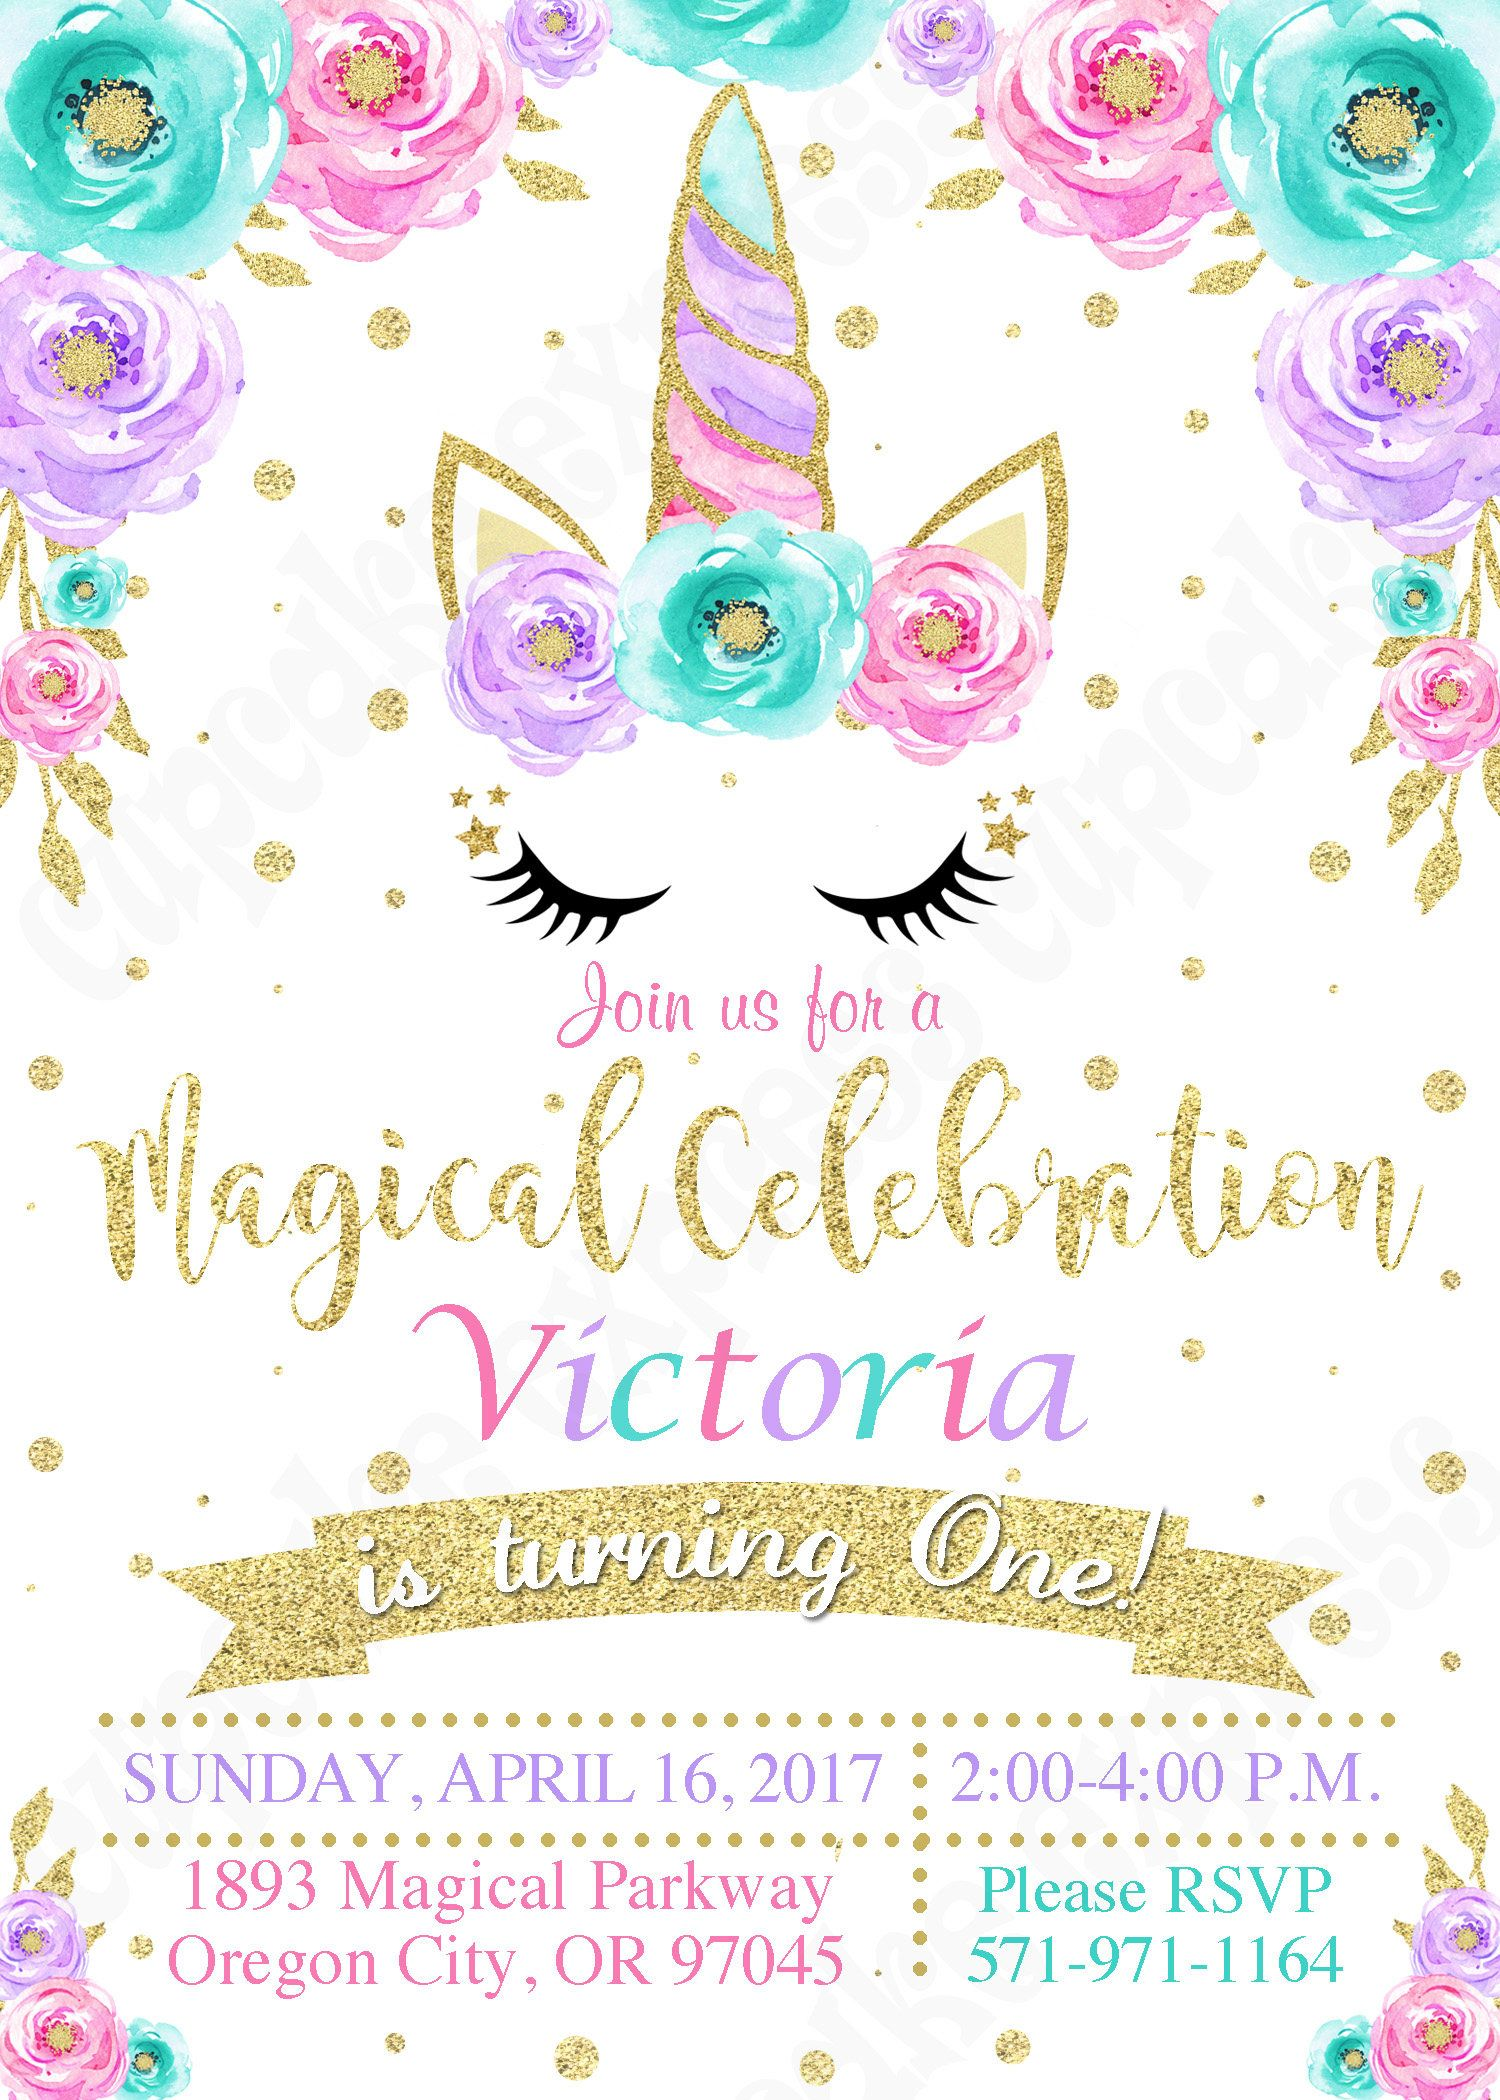 Unicorn Invitation, unicorn party, Magical unicorn invitation, unicorn birthday invitation, 1st